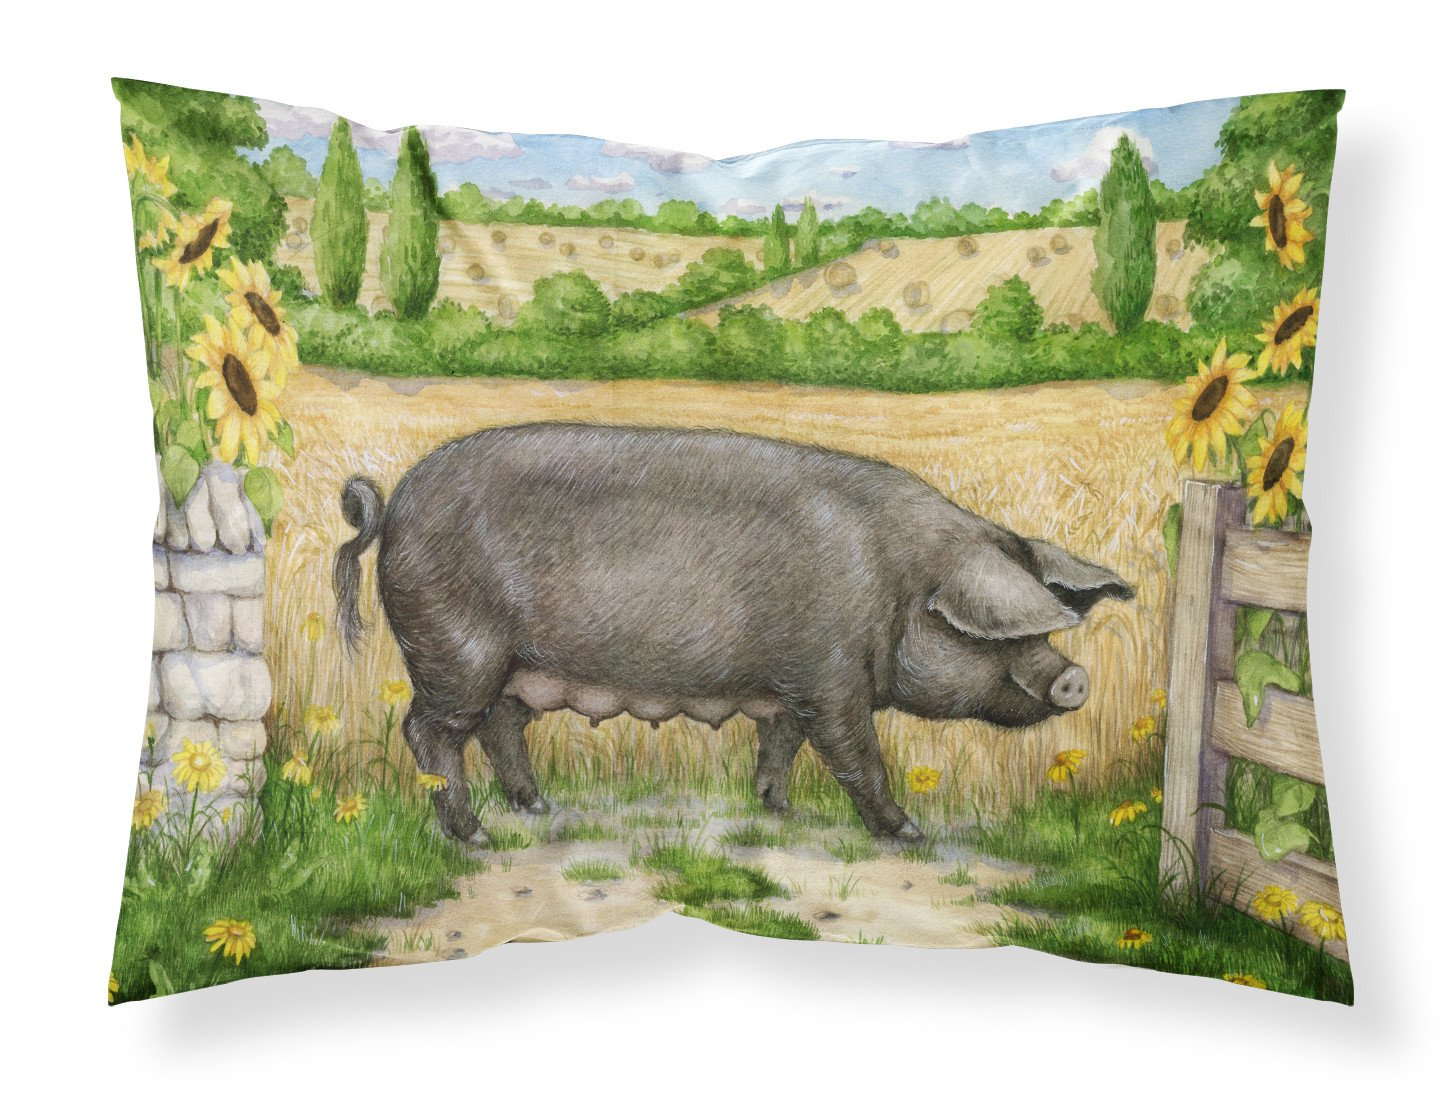 Buy this Black Pig with Sunflowers Fabric Standard Pillowcase CDCO0373PILLOWCASE